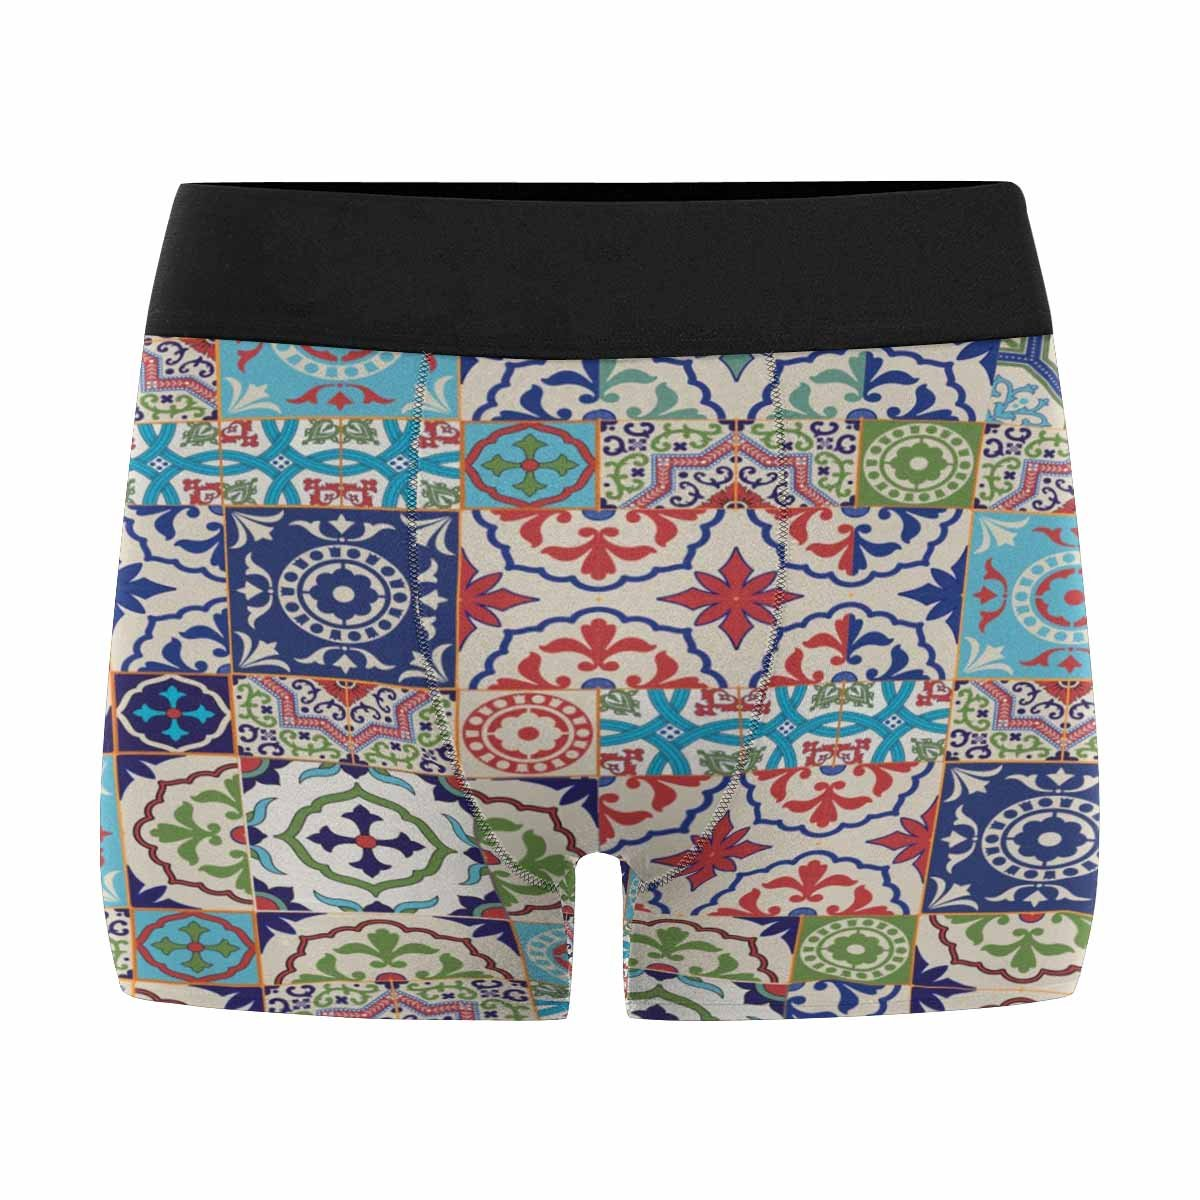 INTERESTPRINT Custom Mens All-Over Print Boxer Briefs Mega Gorgeous Patchwork Pattern from Colorful Moroccan Tiles XS-3XL